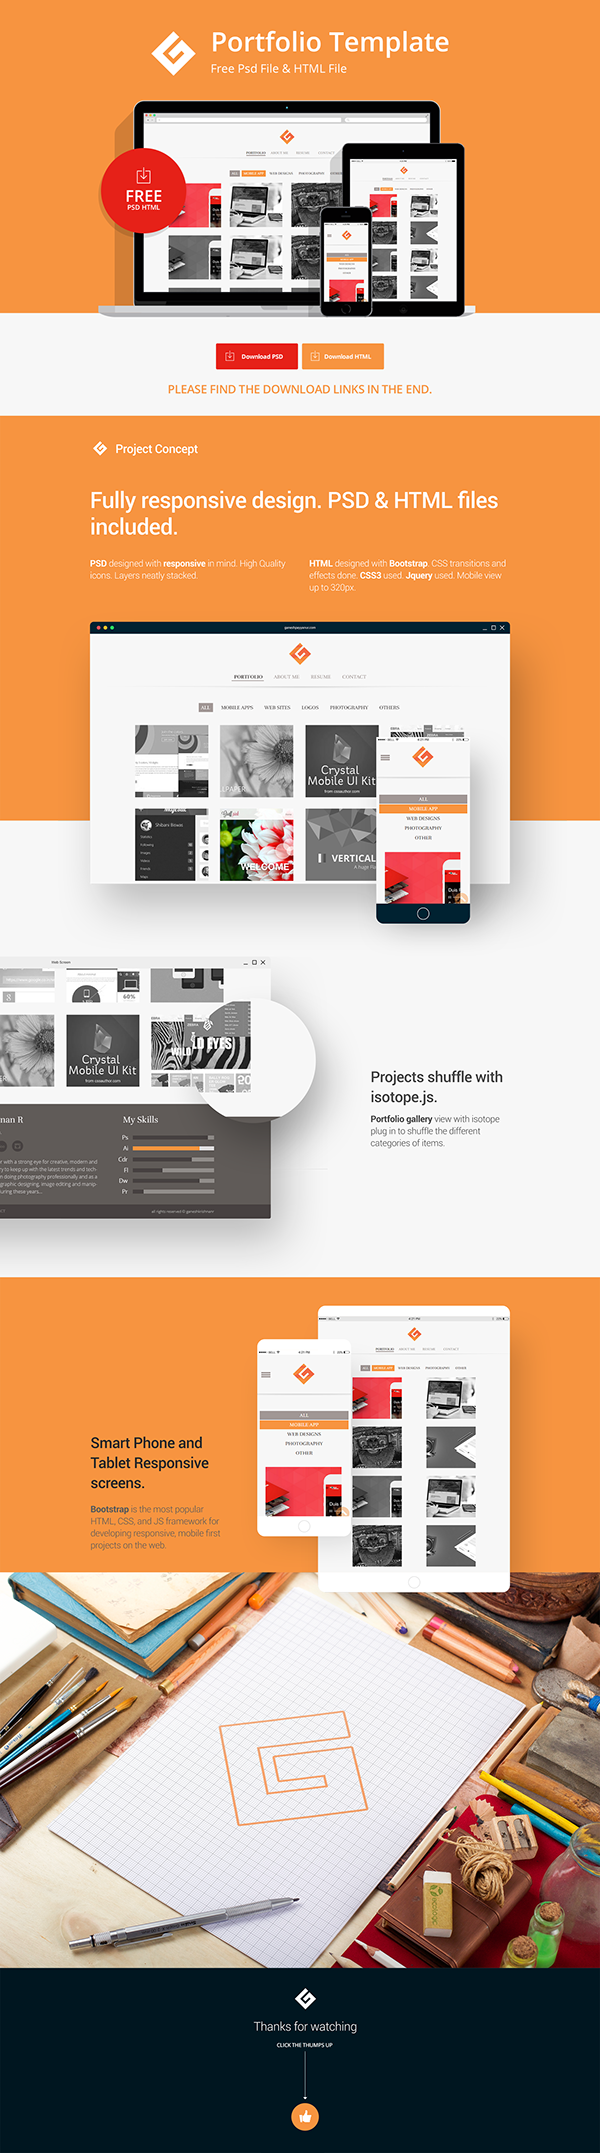 A Free HTML and PSD Template by #Ganesh KrishnanR on #Behance ...